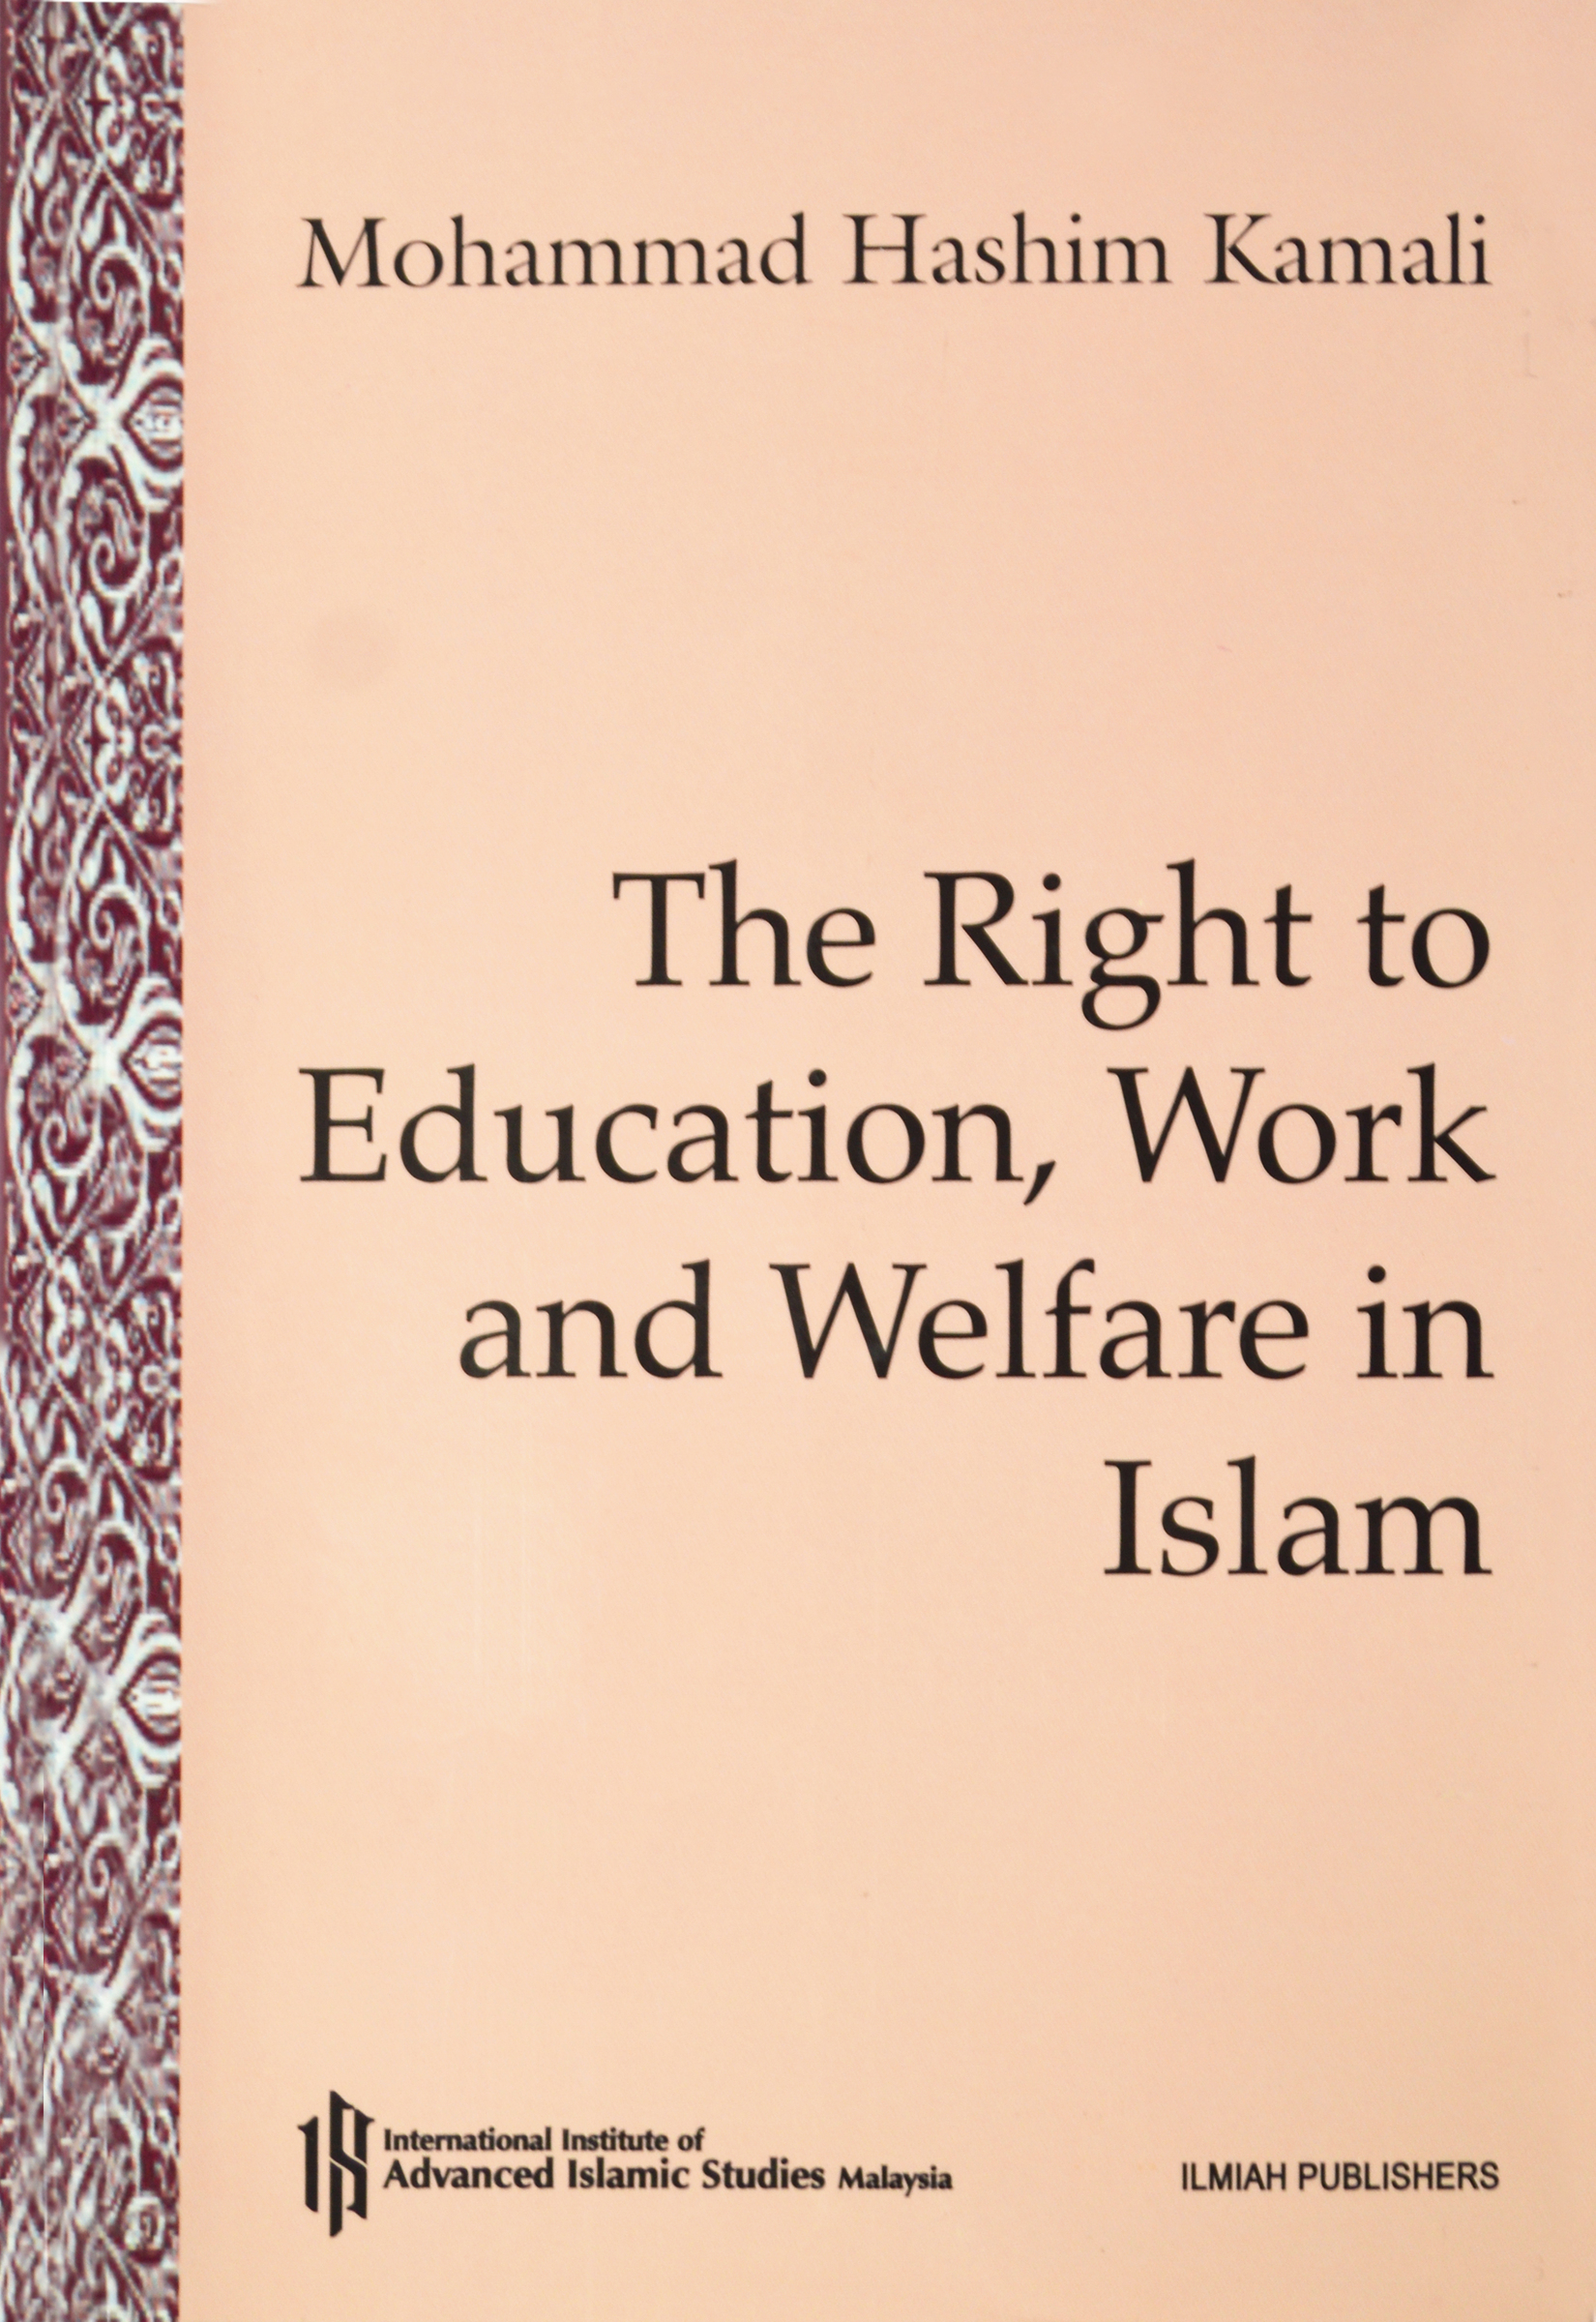 The Right to Education. Work and Welfare.jpg